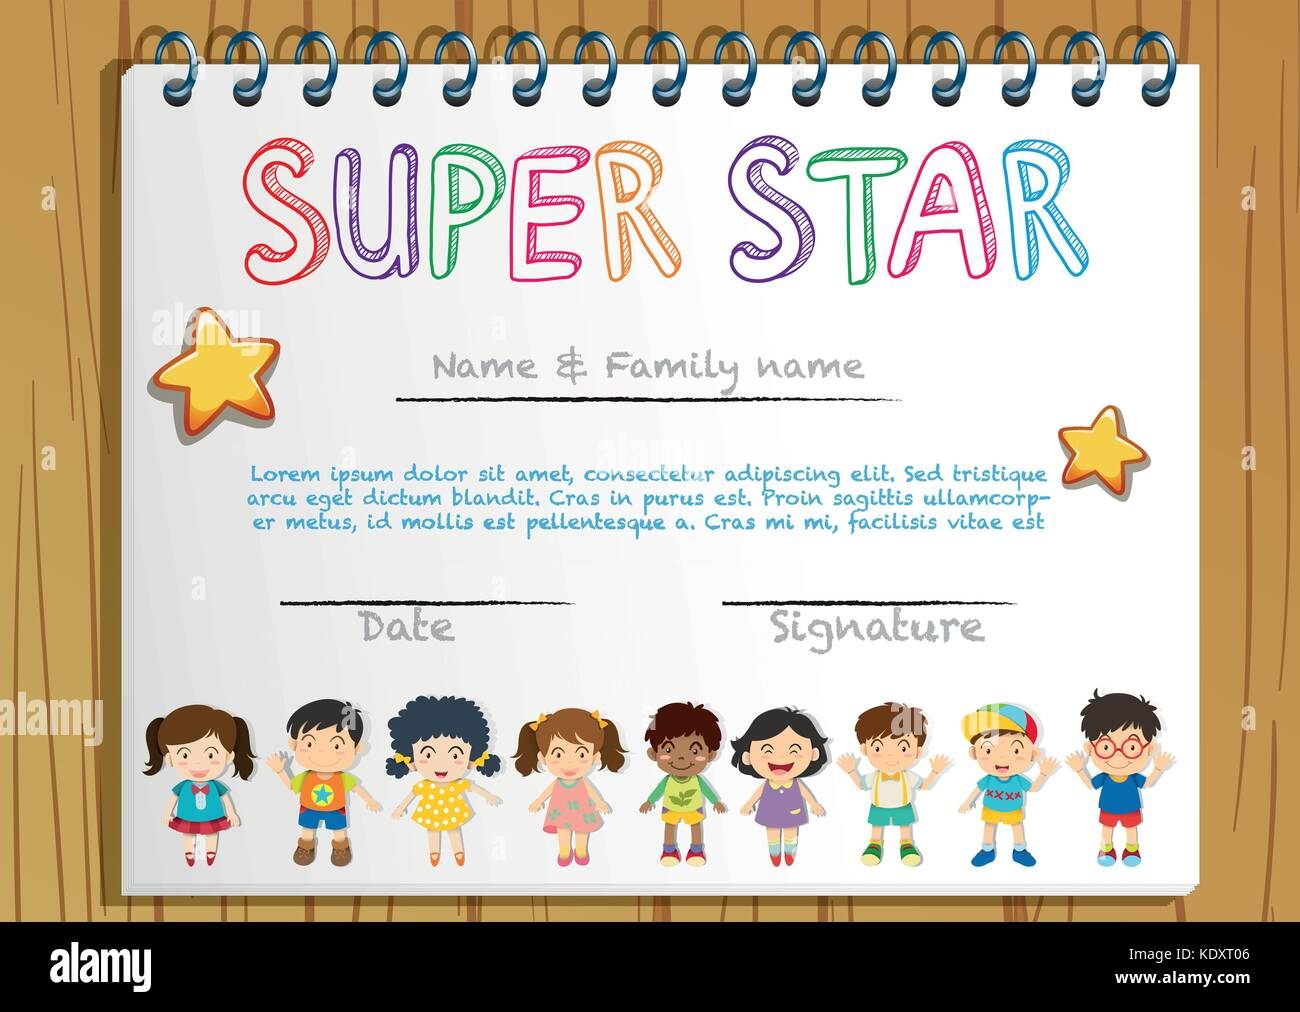 Gold star certificate template image collections templates name a star certificate template choice image templates example gold star certificate template choice image templates yelopaper Gallery